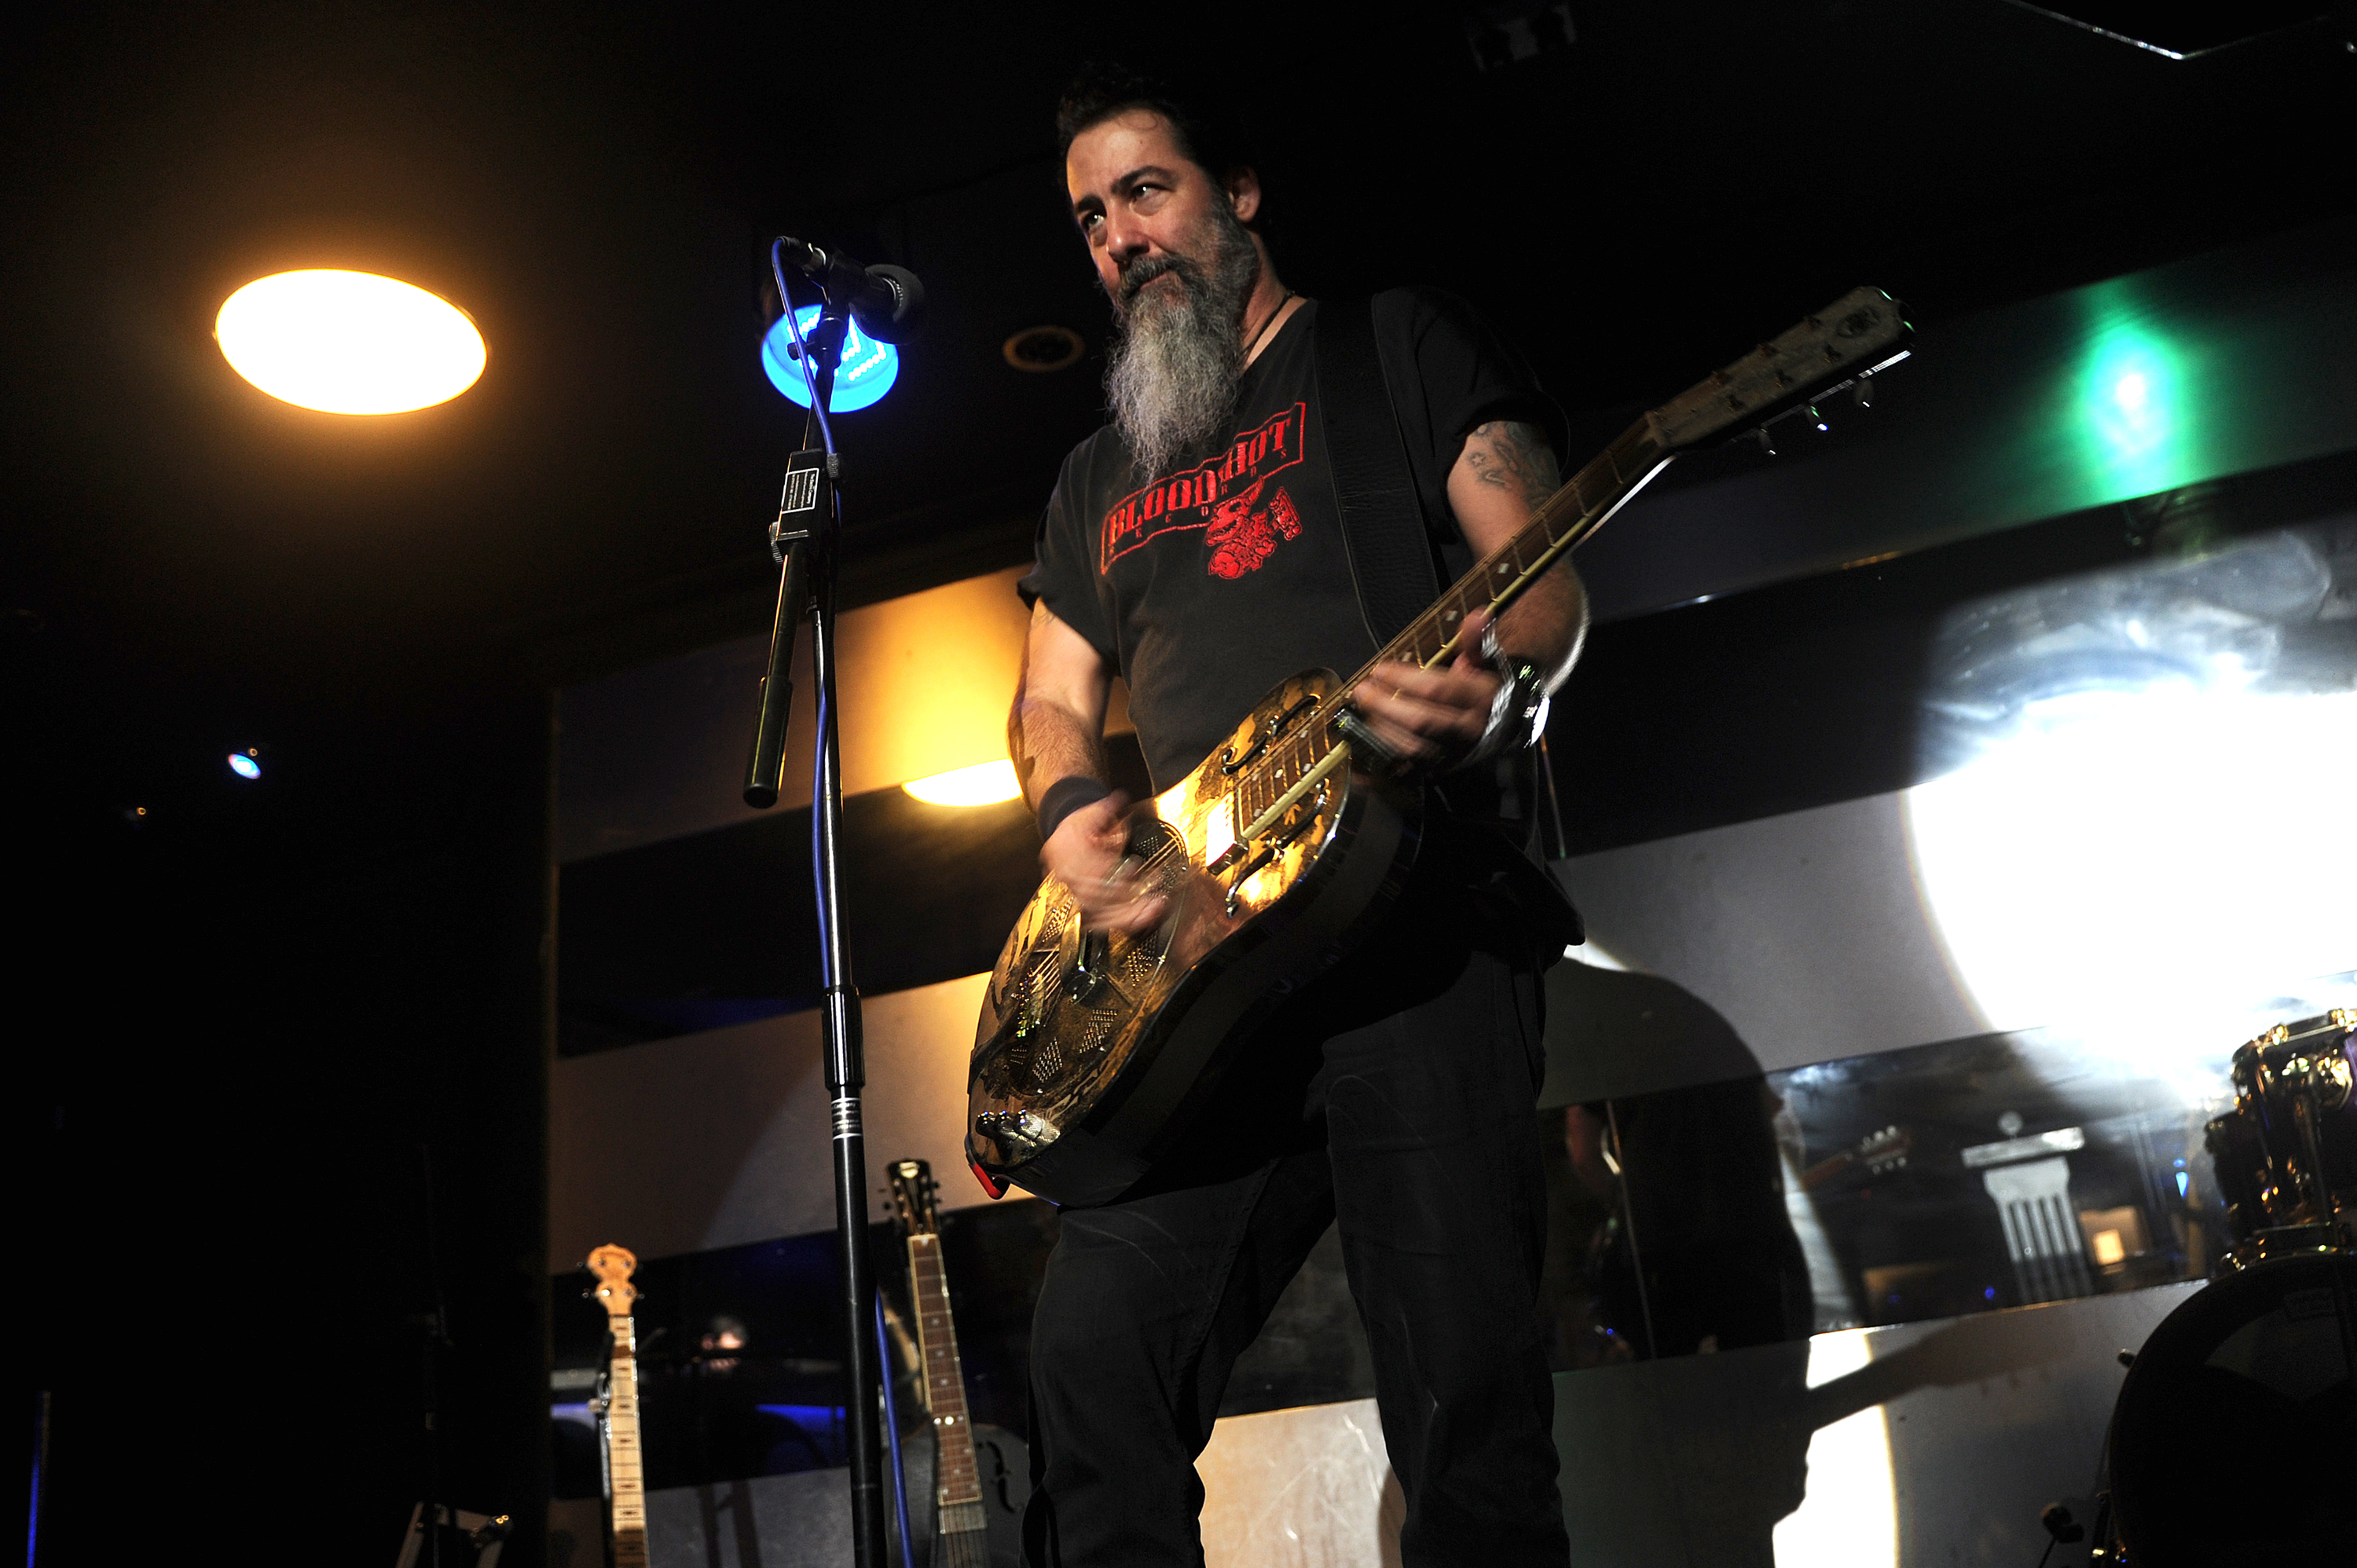 Dave Arcari on stage at the Beau Nightclub during Almost Blue 2015.